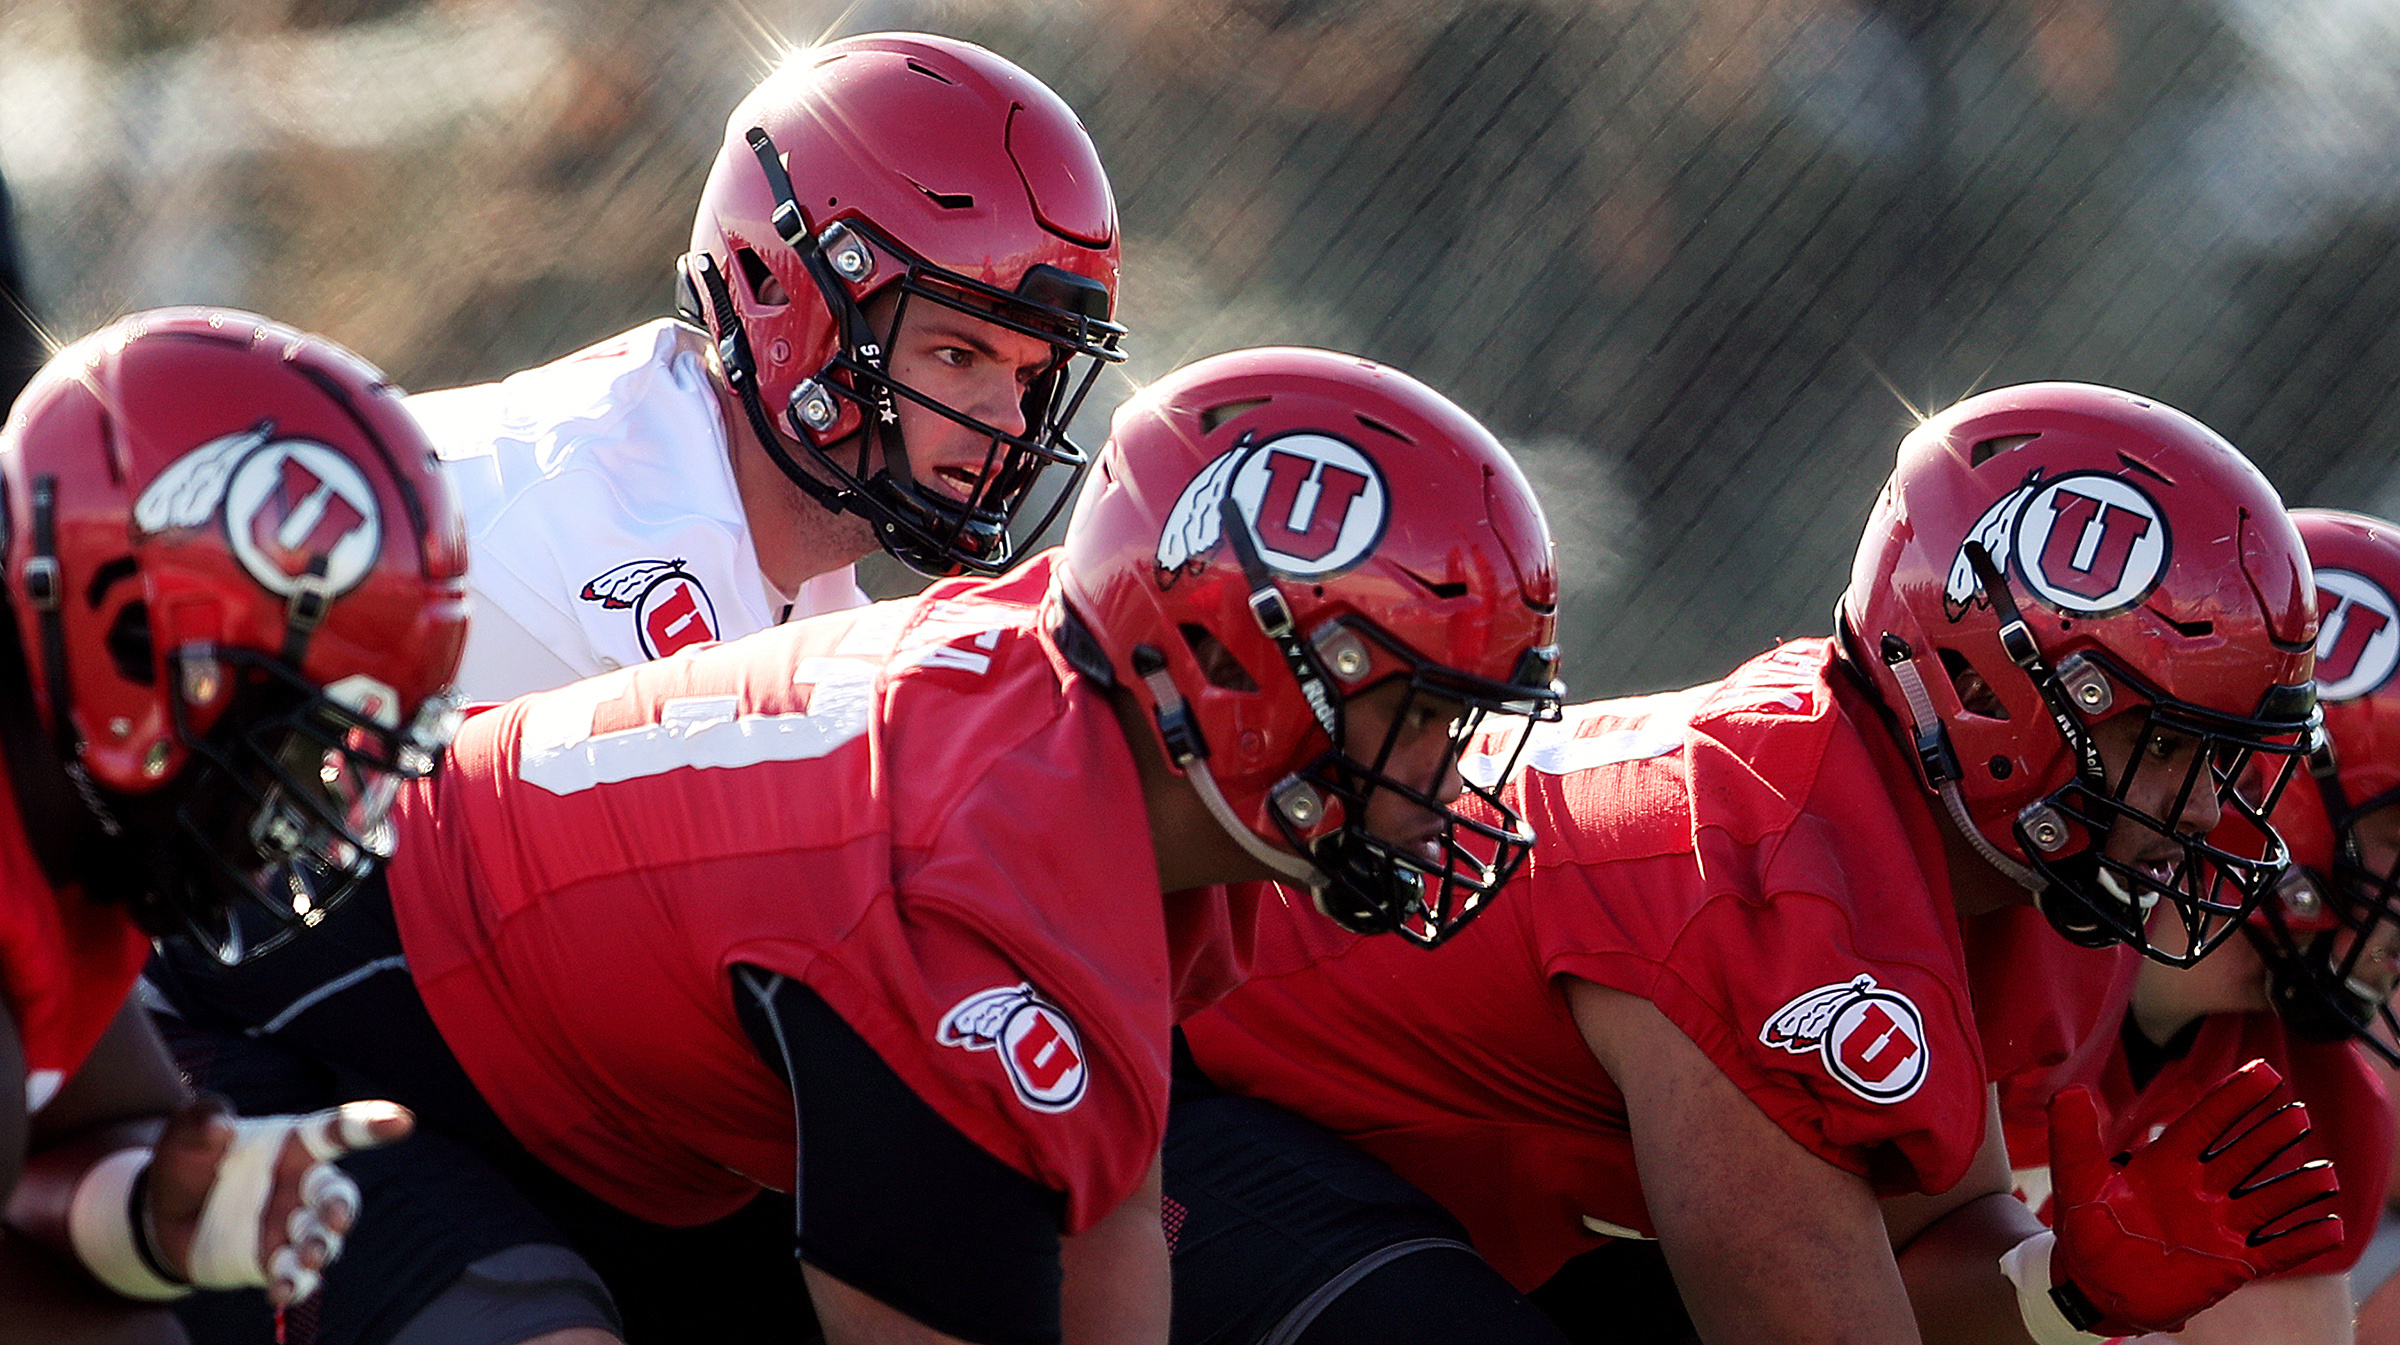 Quarterback Jake Bentley calls signals during a drill as the University of Utah football team opens spring camp at the Eccles Football Facility practice fields in Salt Lake City on Monday, March 2, 2020.